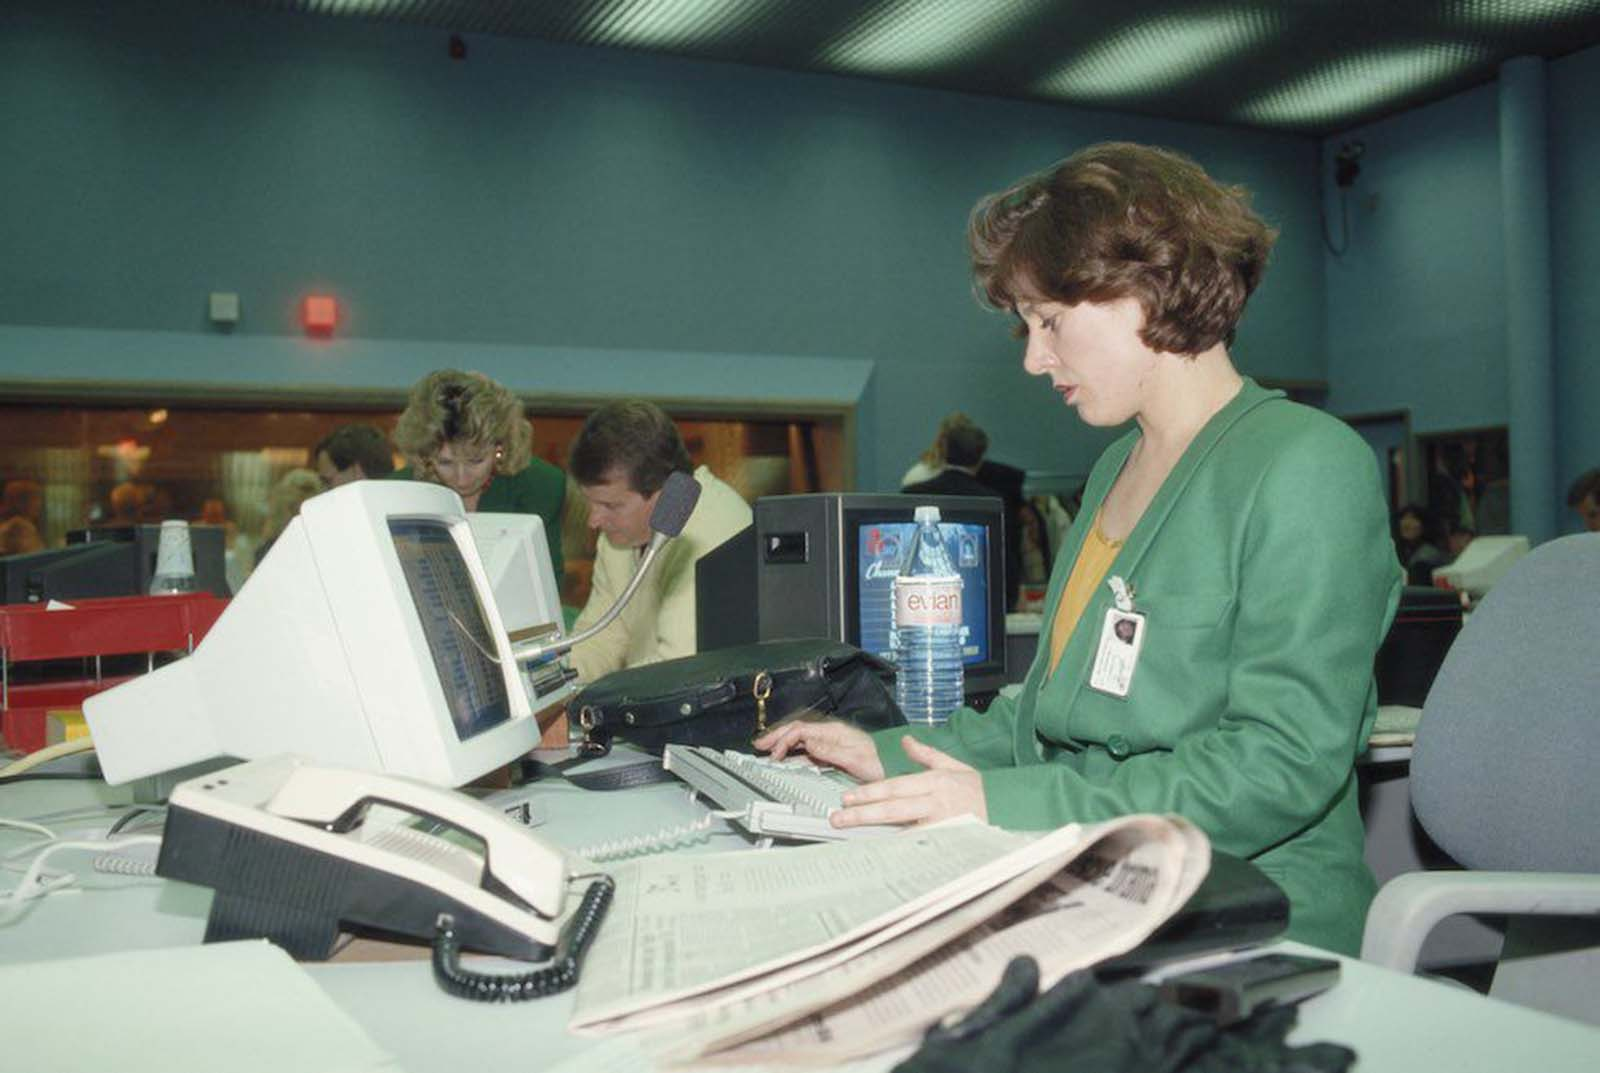 An office worker during the launch of Sky TV in London. She wears a green double-breasted jacket, possibly part of a uniform. Her hair is feathered in layers. In the background another woman wears a similar jacket. Her hair is bleached and waved over large earrings. 1989.